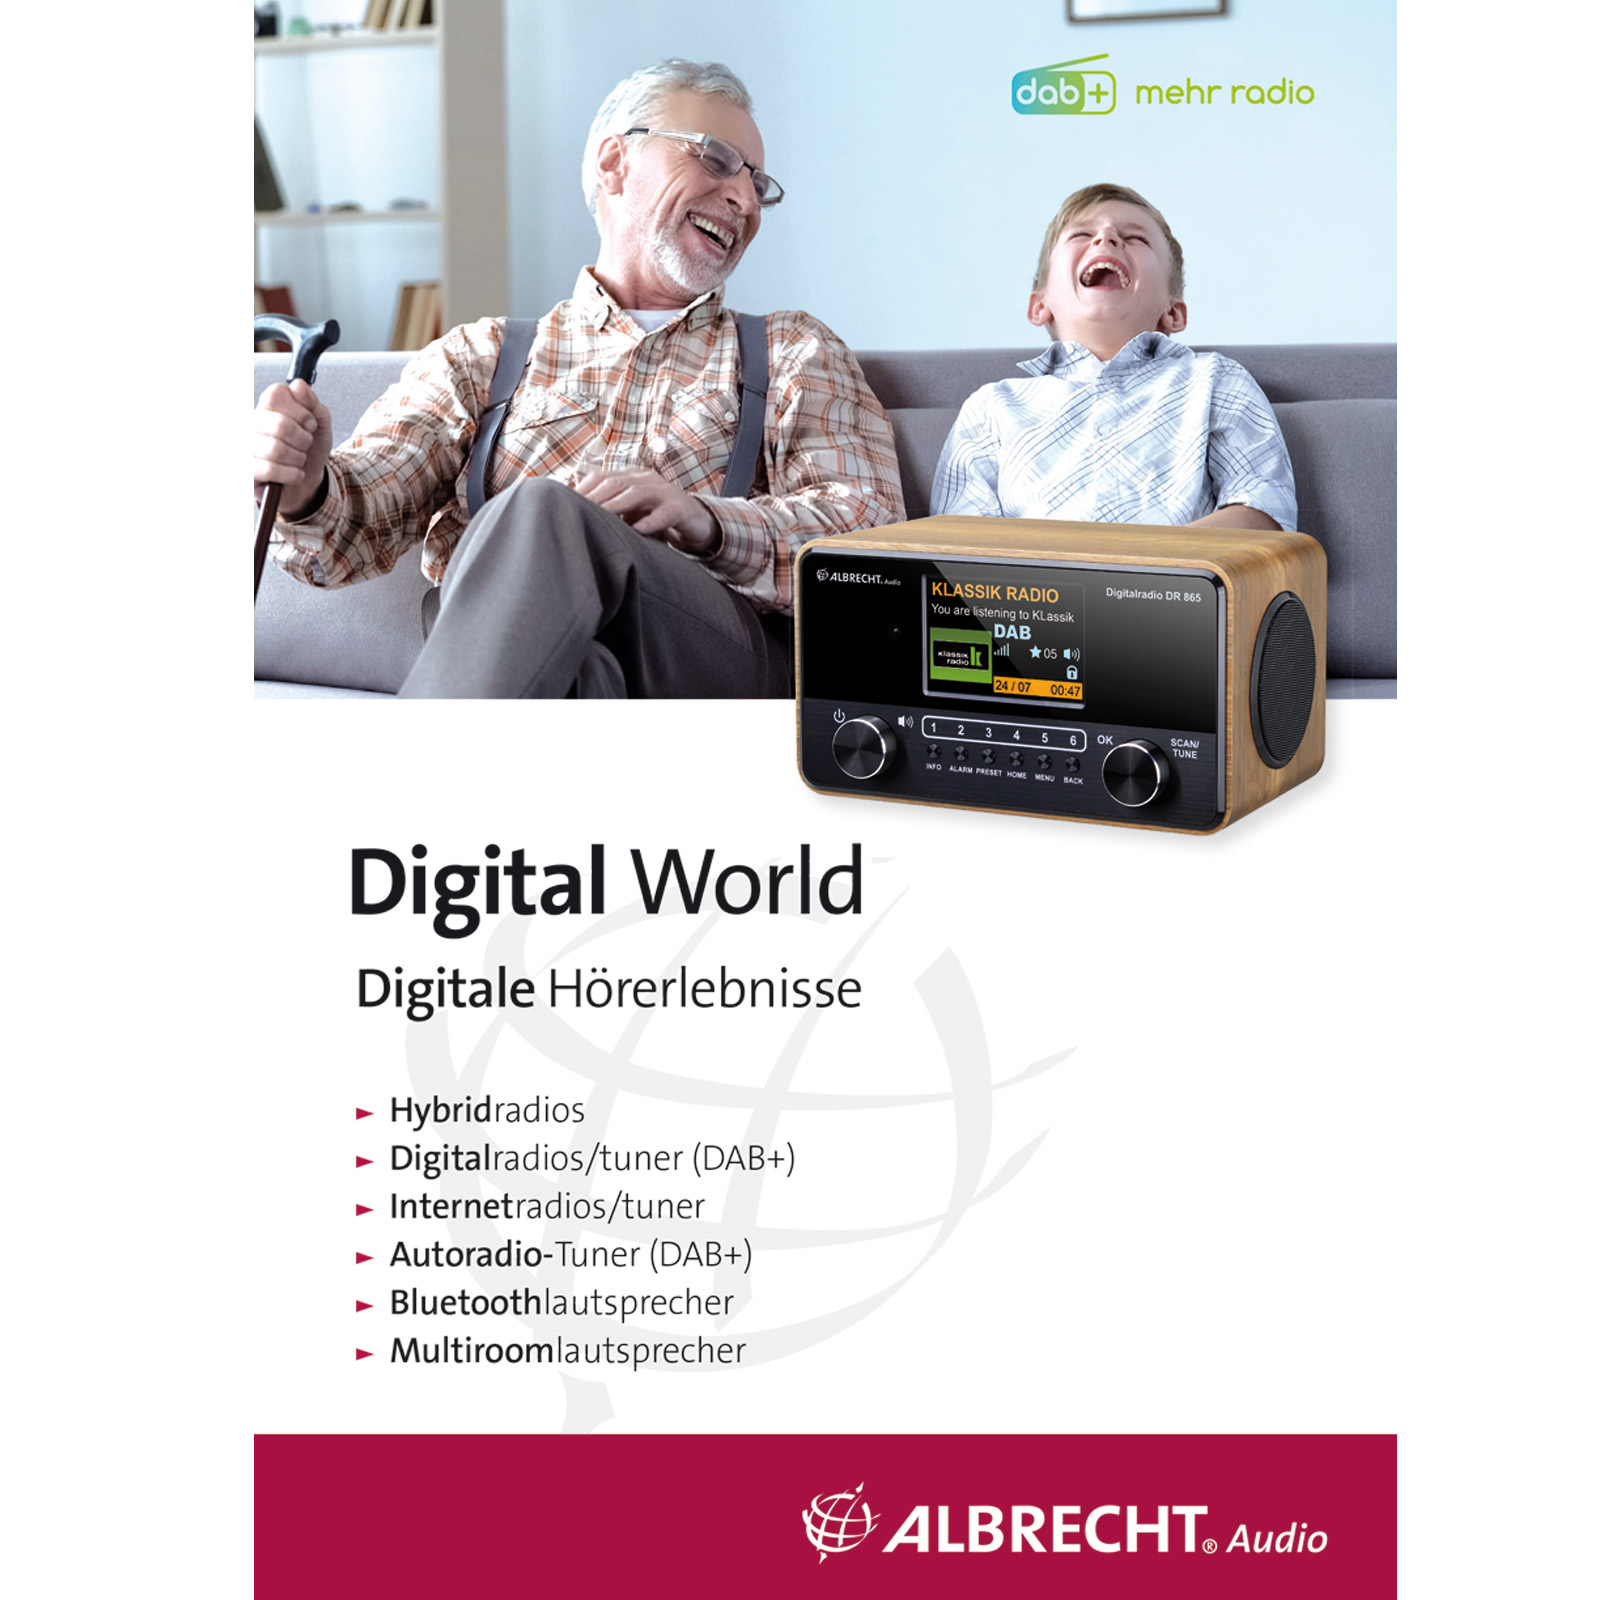 Albrecht Katalog Digital World, deutsch_4032661090904_ALBRECHT_#1